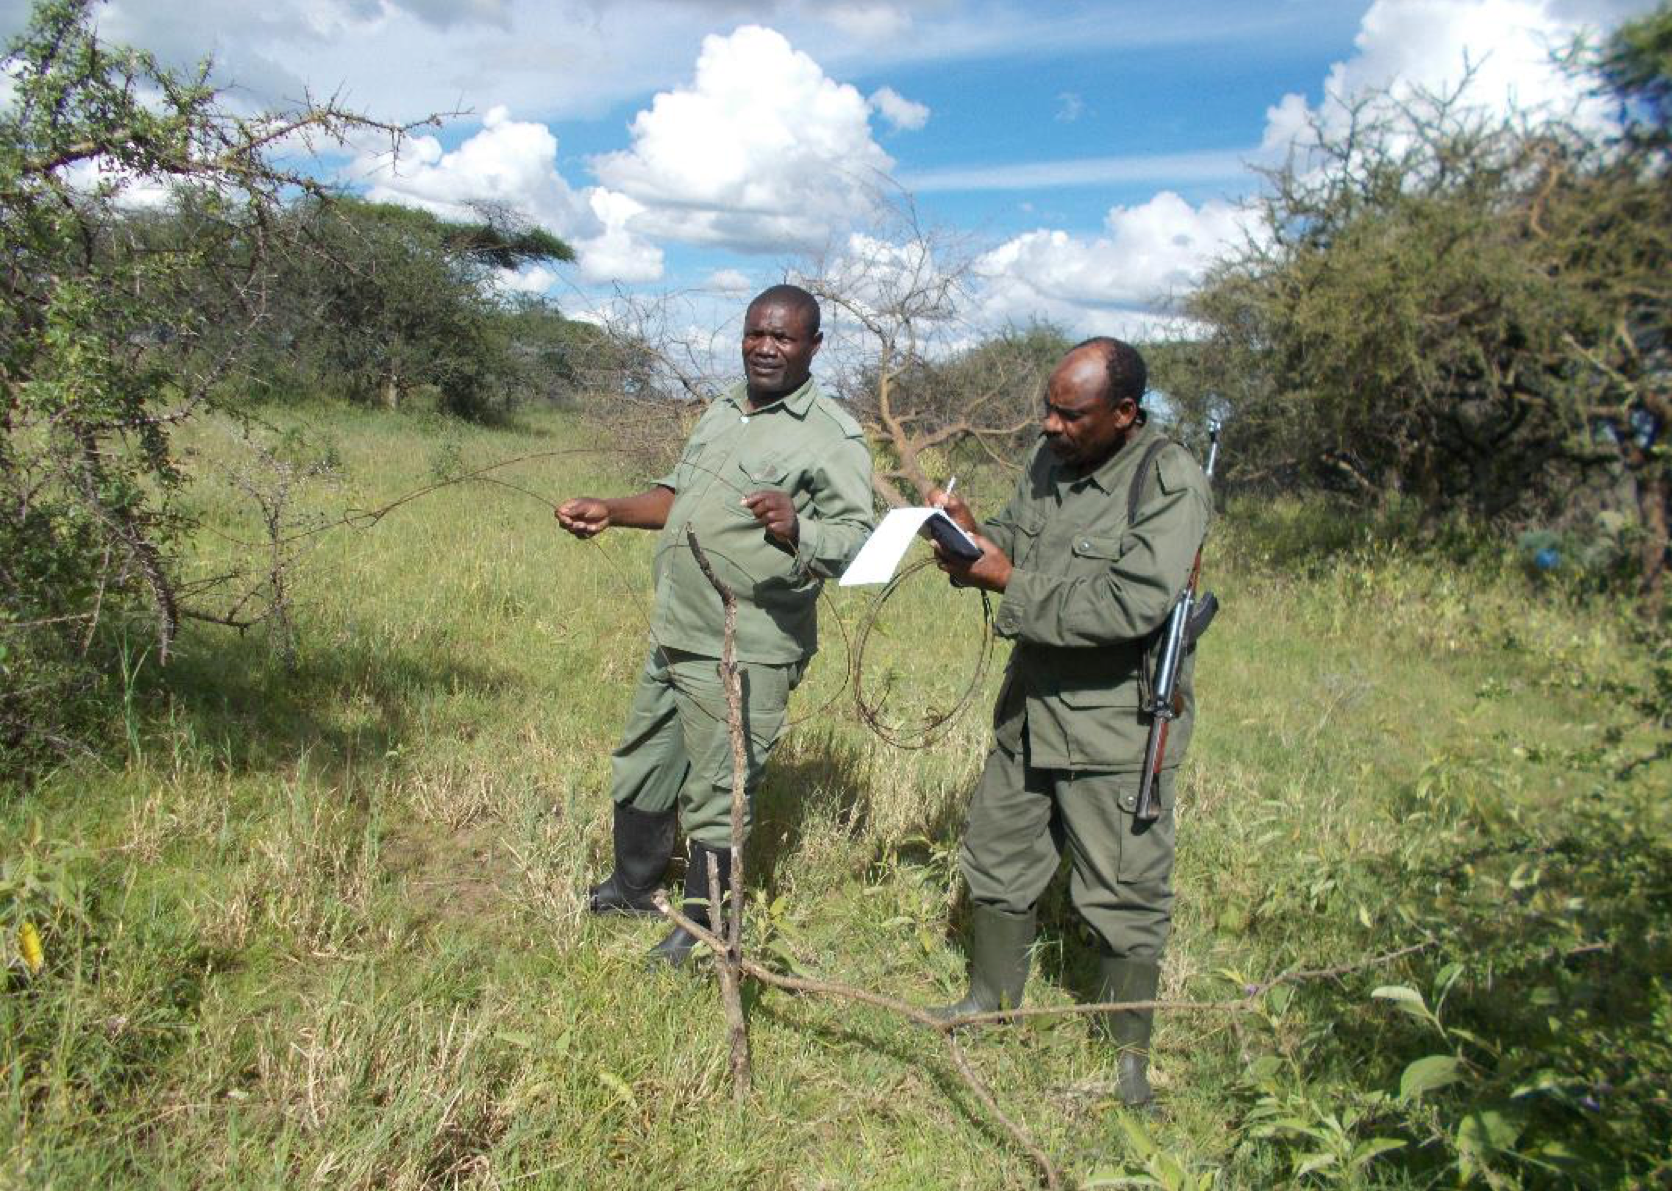 Collecting important data from the field about locations and types of snares